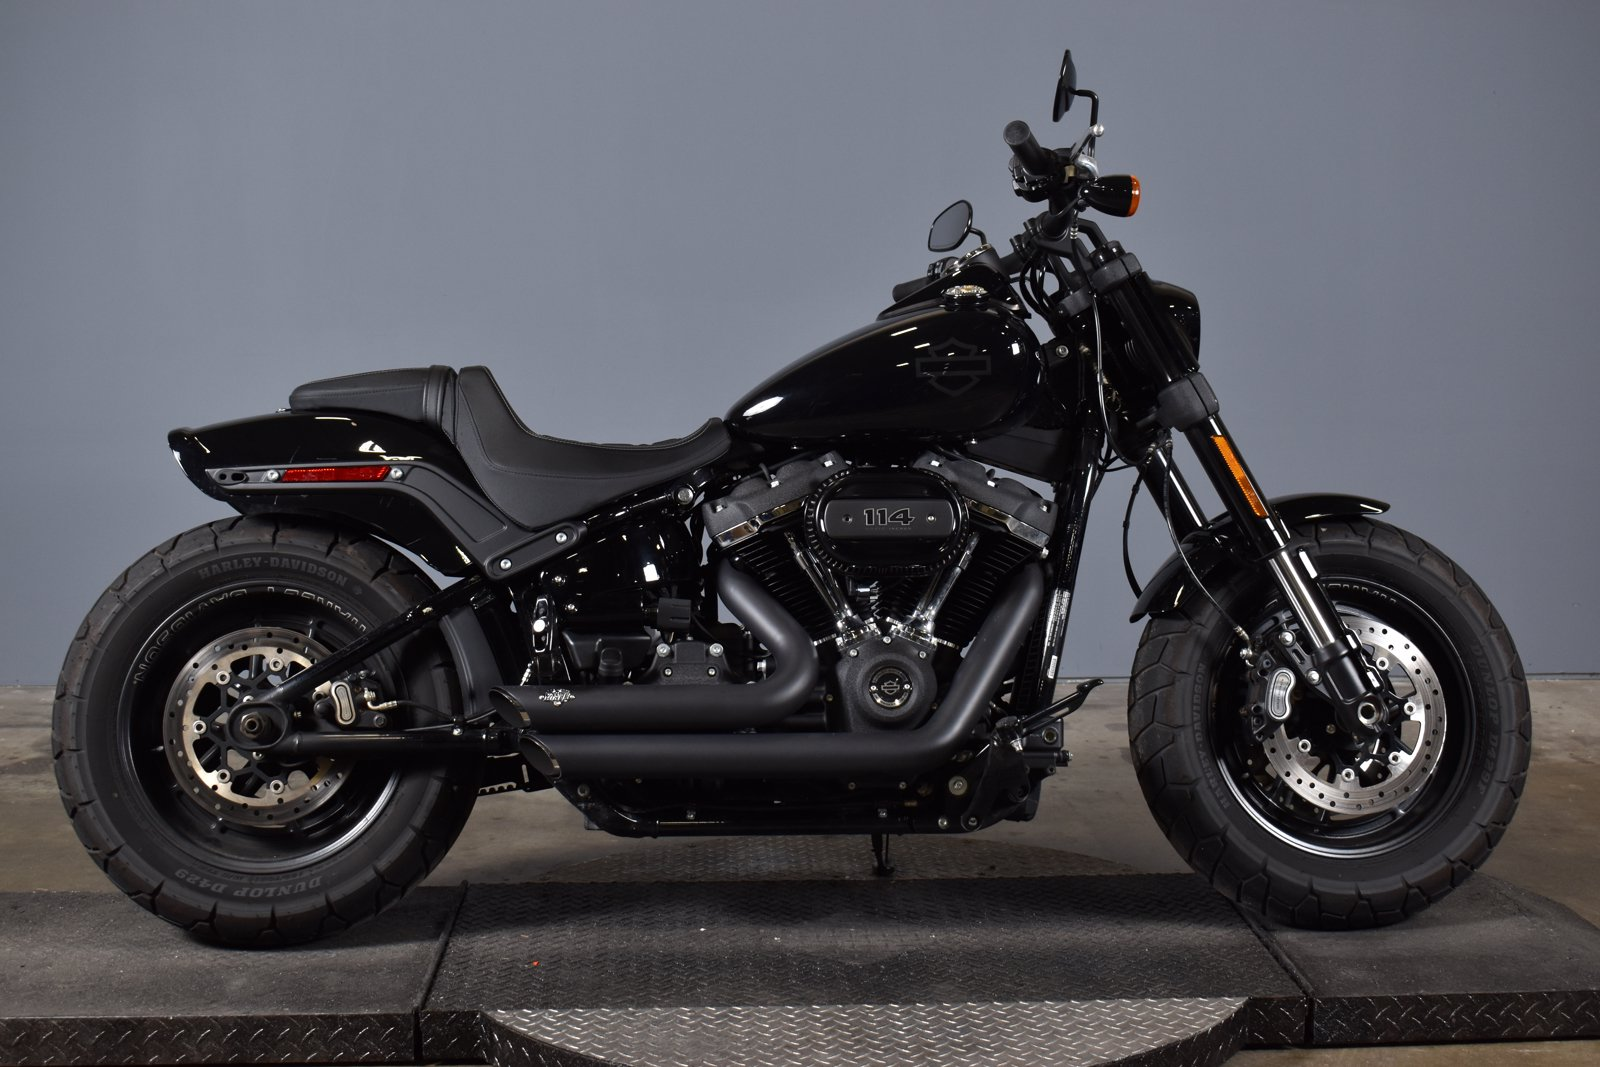 Pre-Owned 2021 Harley-Davidson Softail Fat Bob 114 FXFBS